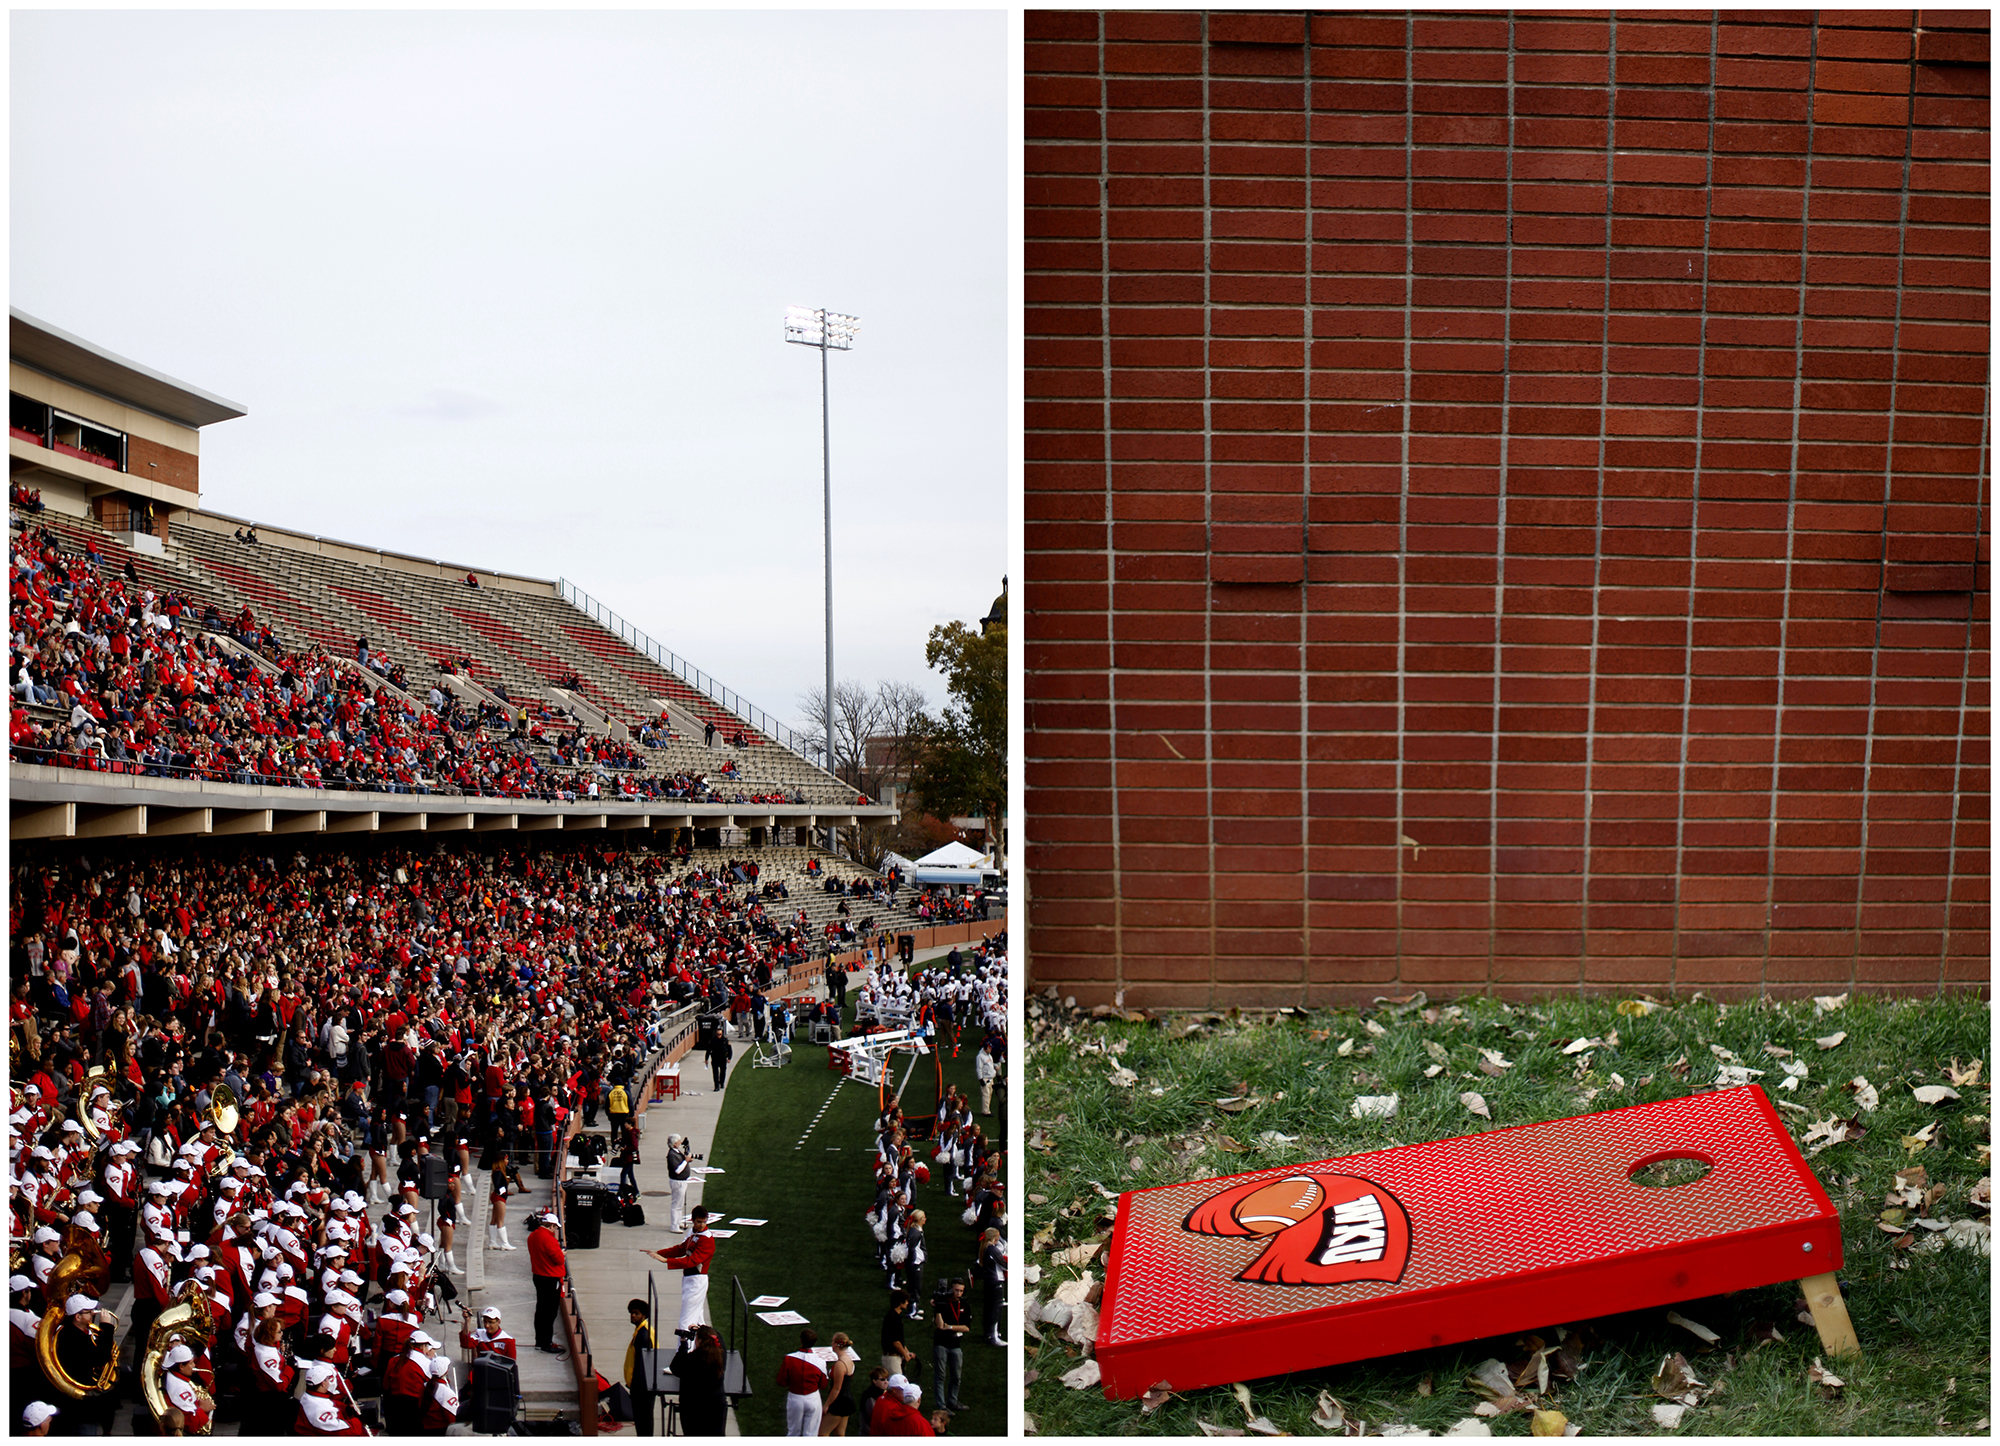 Left: A sparse crowd cheers on the Tops at L.T. Smith Stadium at the 2014 Homecoming game on Saturday, Nov. 8, 2014. Right: A corn-hole board sits during Homecoming tailgating in the Valley at WKU on Saturday, Nov. 8, 2014.